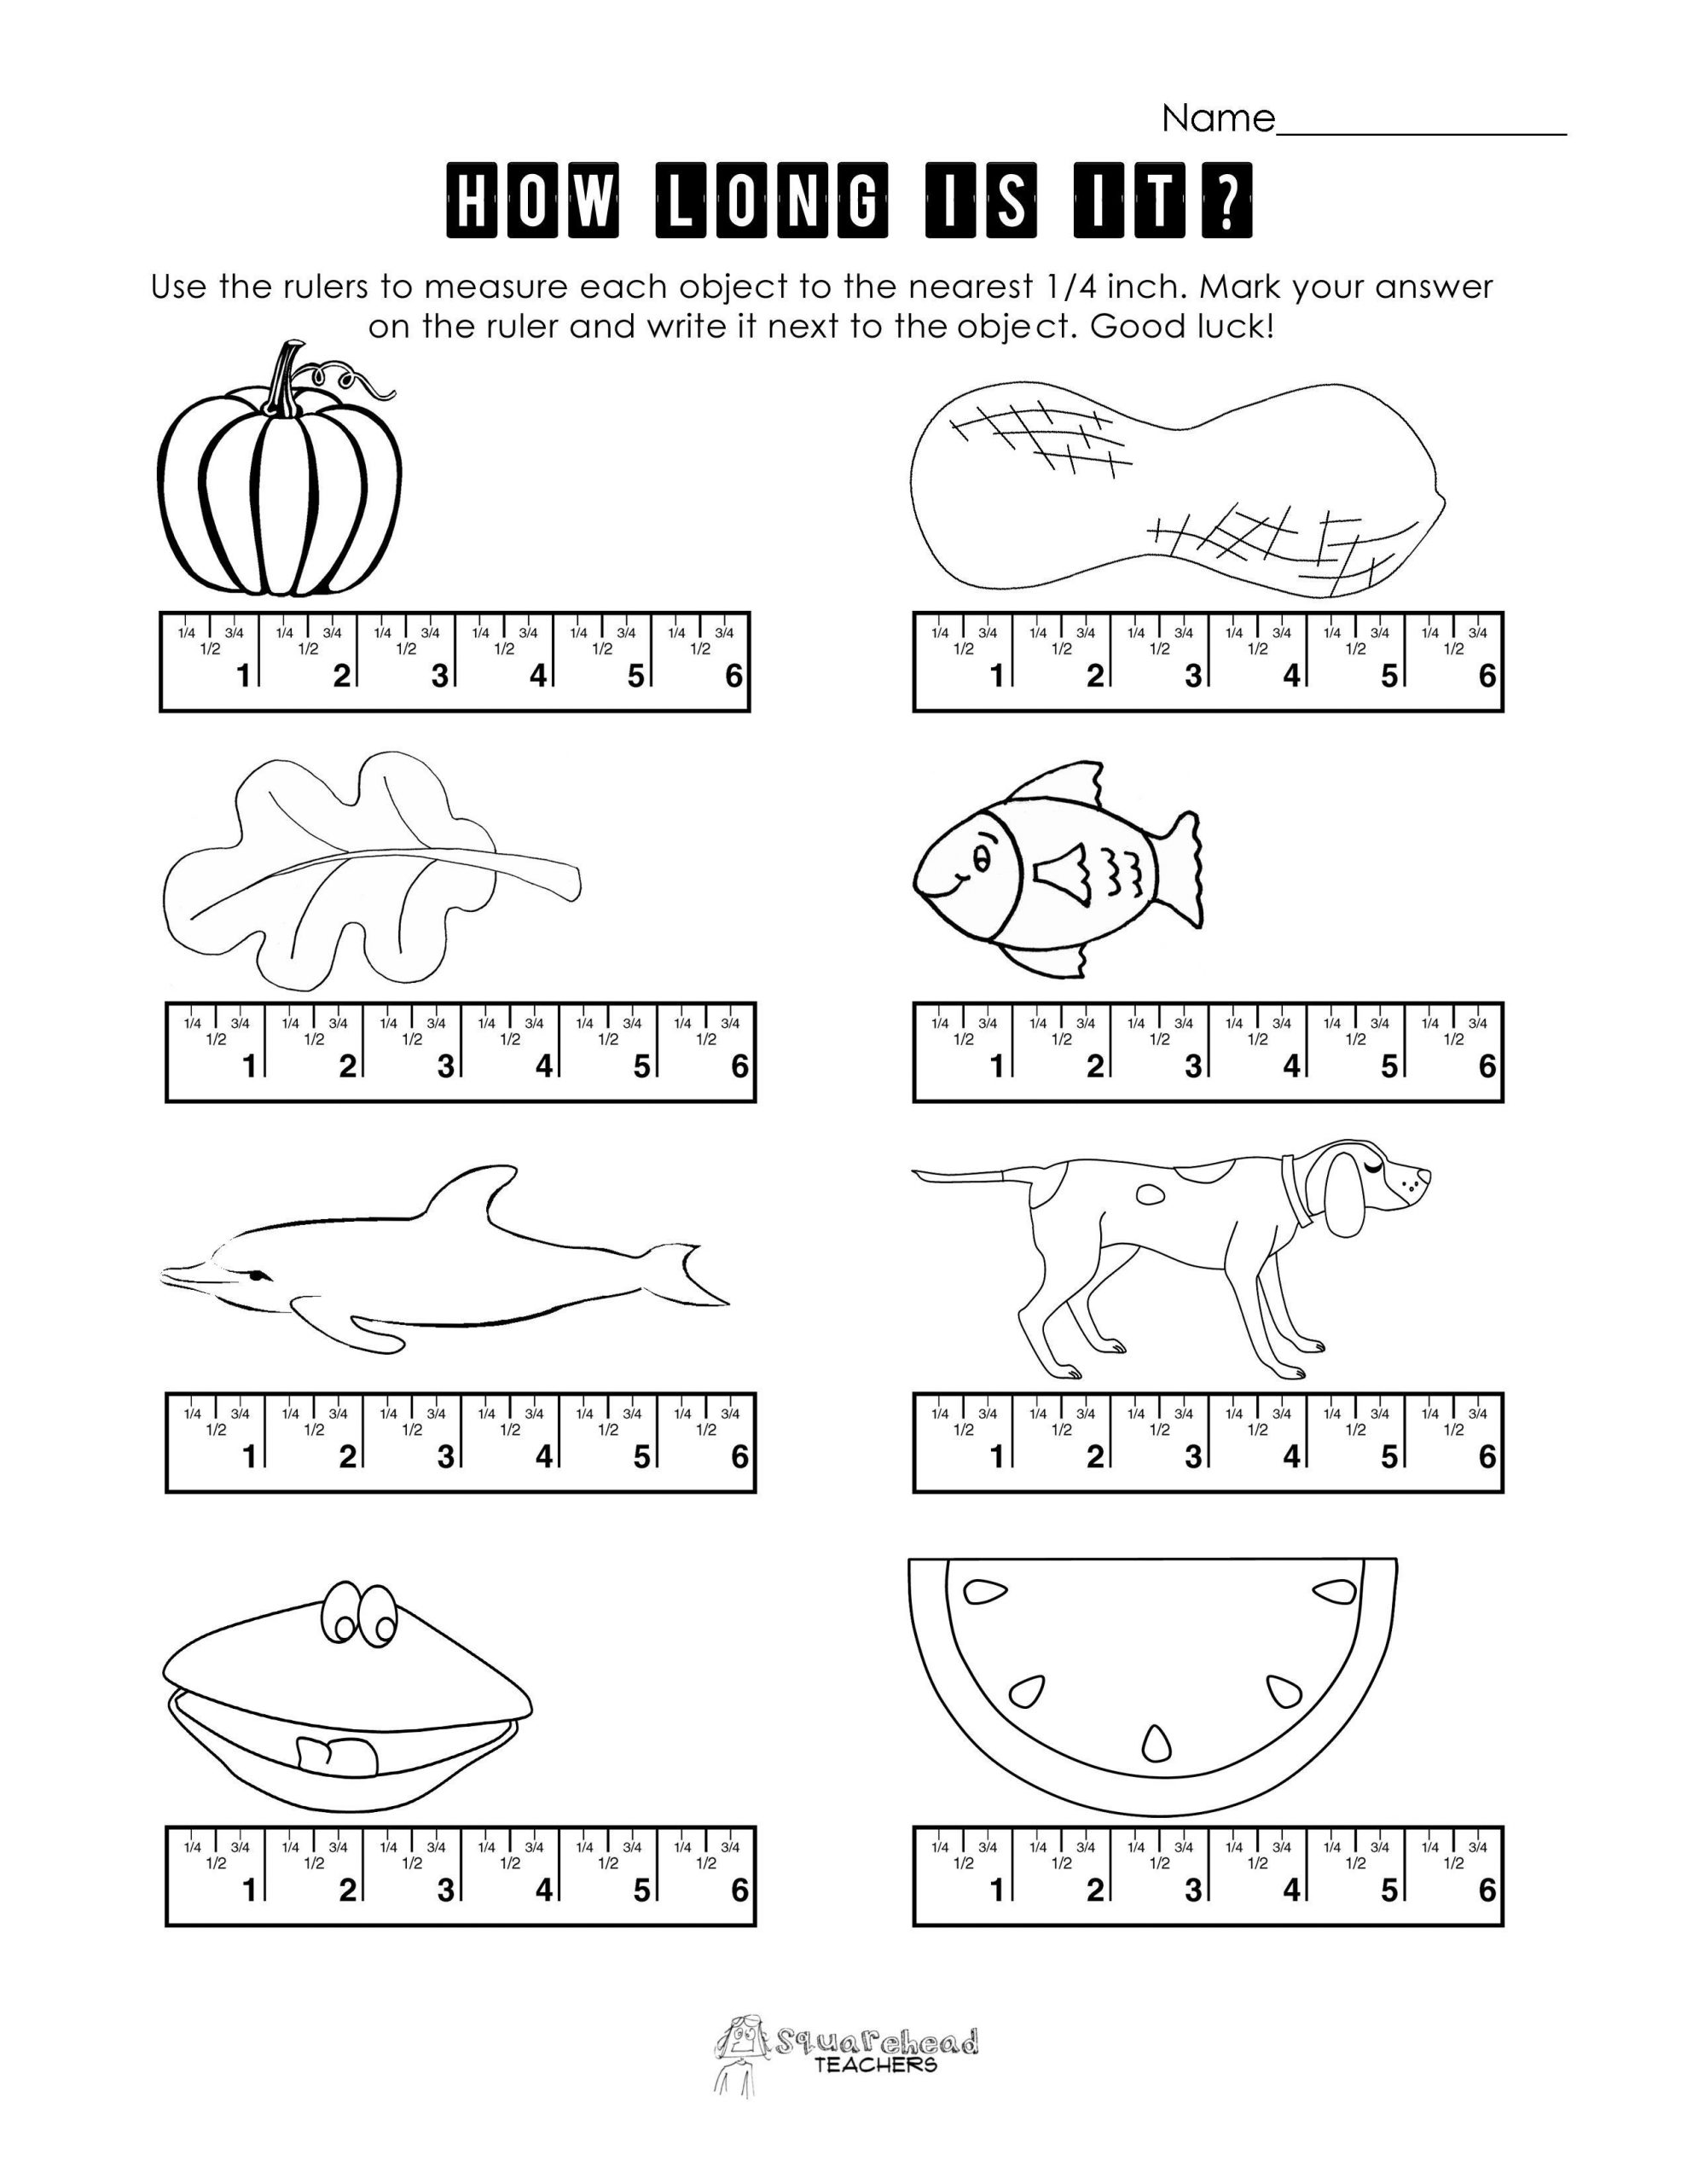 Third Grade Measurement Worksheets 1st Grade Measurement Worksheets Math Worksheet for Kids